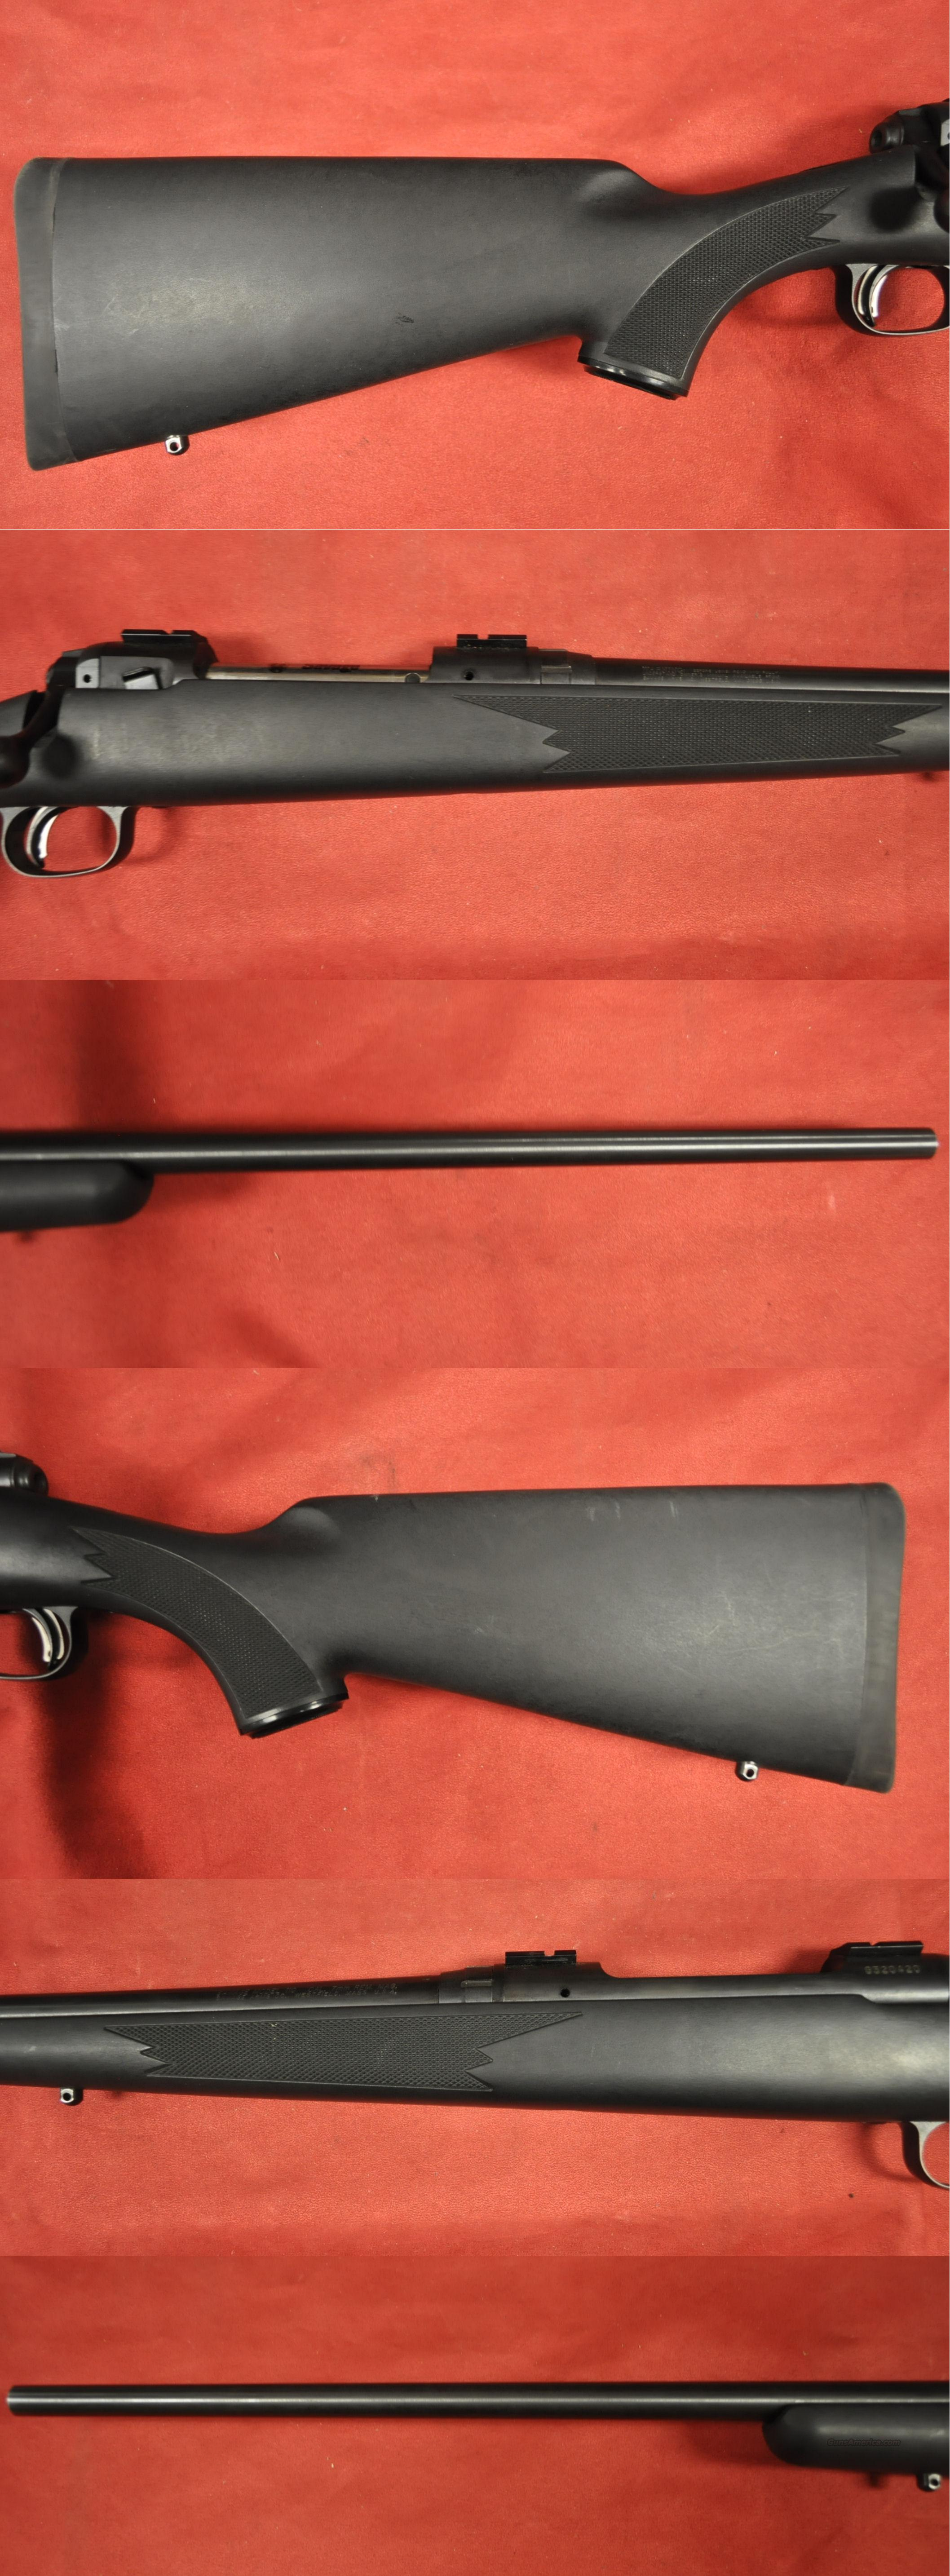 Savage Mdl 110 7mm Rem Mag  *MUST CALL*  Guns > Rifles > Savage Rifles > Accutrigger Models > Sporting